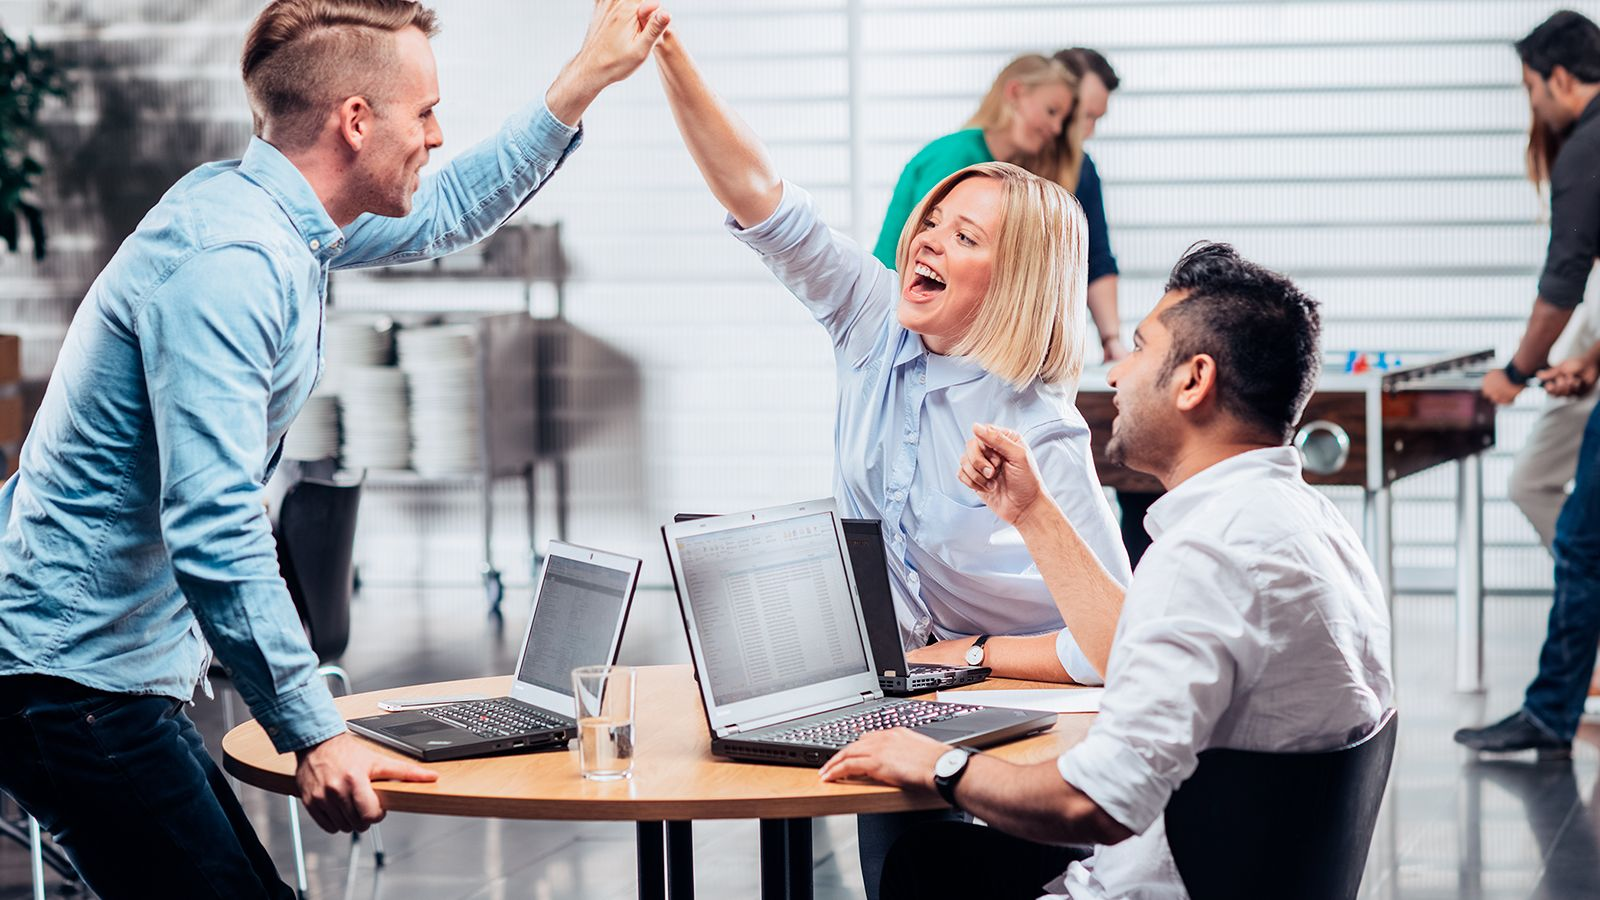 Happy coworkers in office giving high five